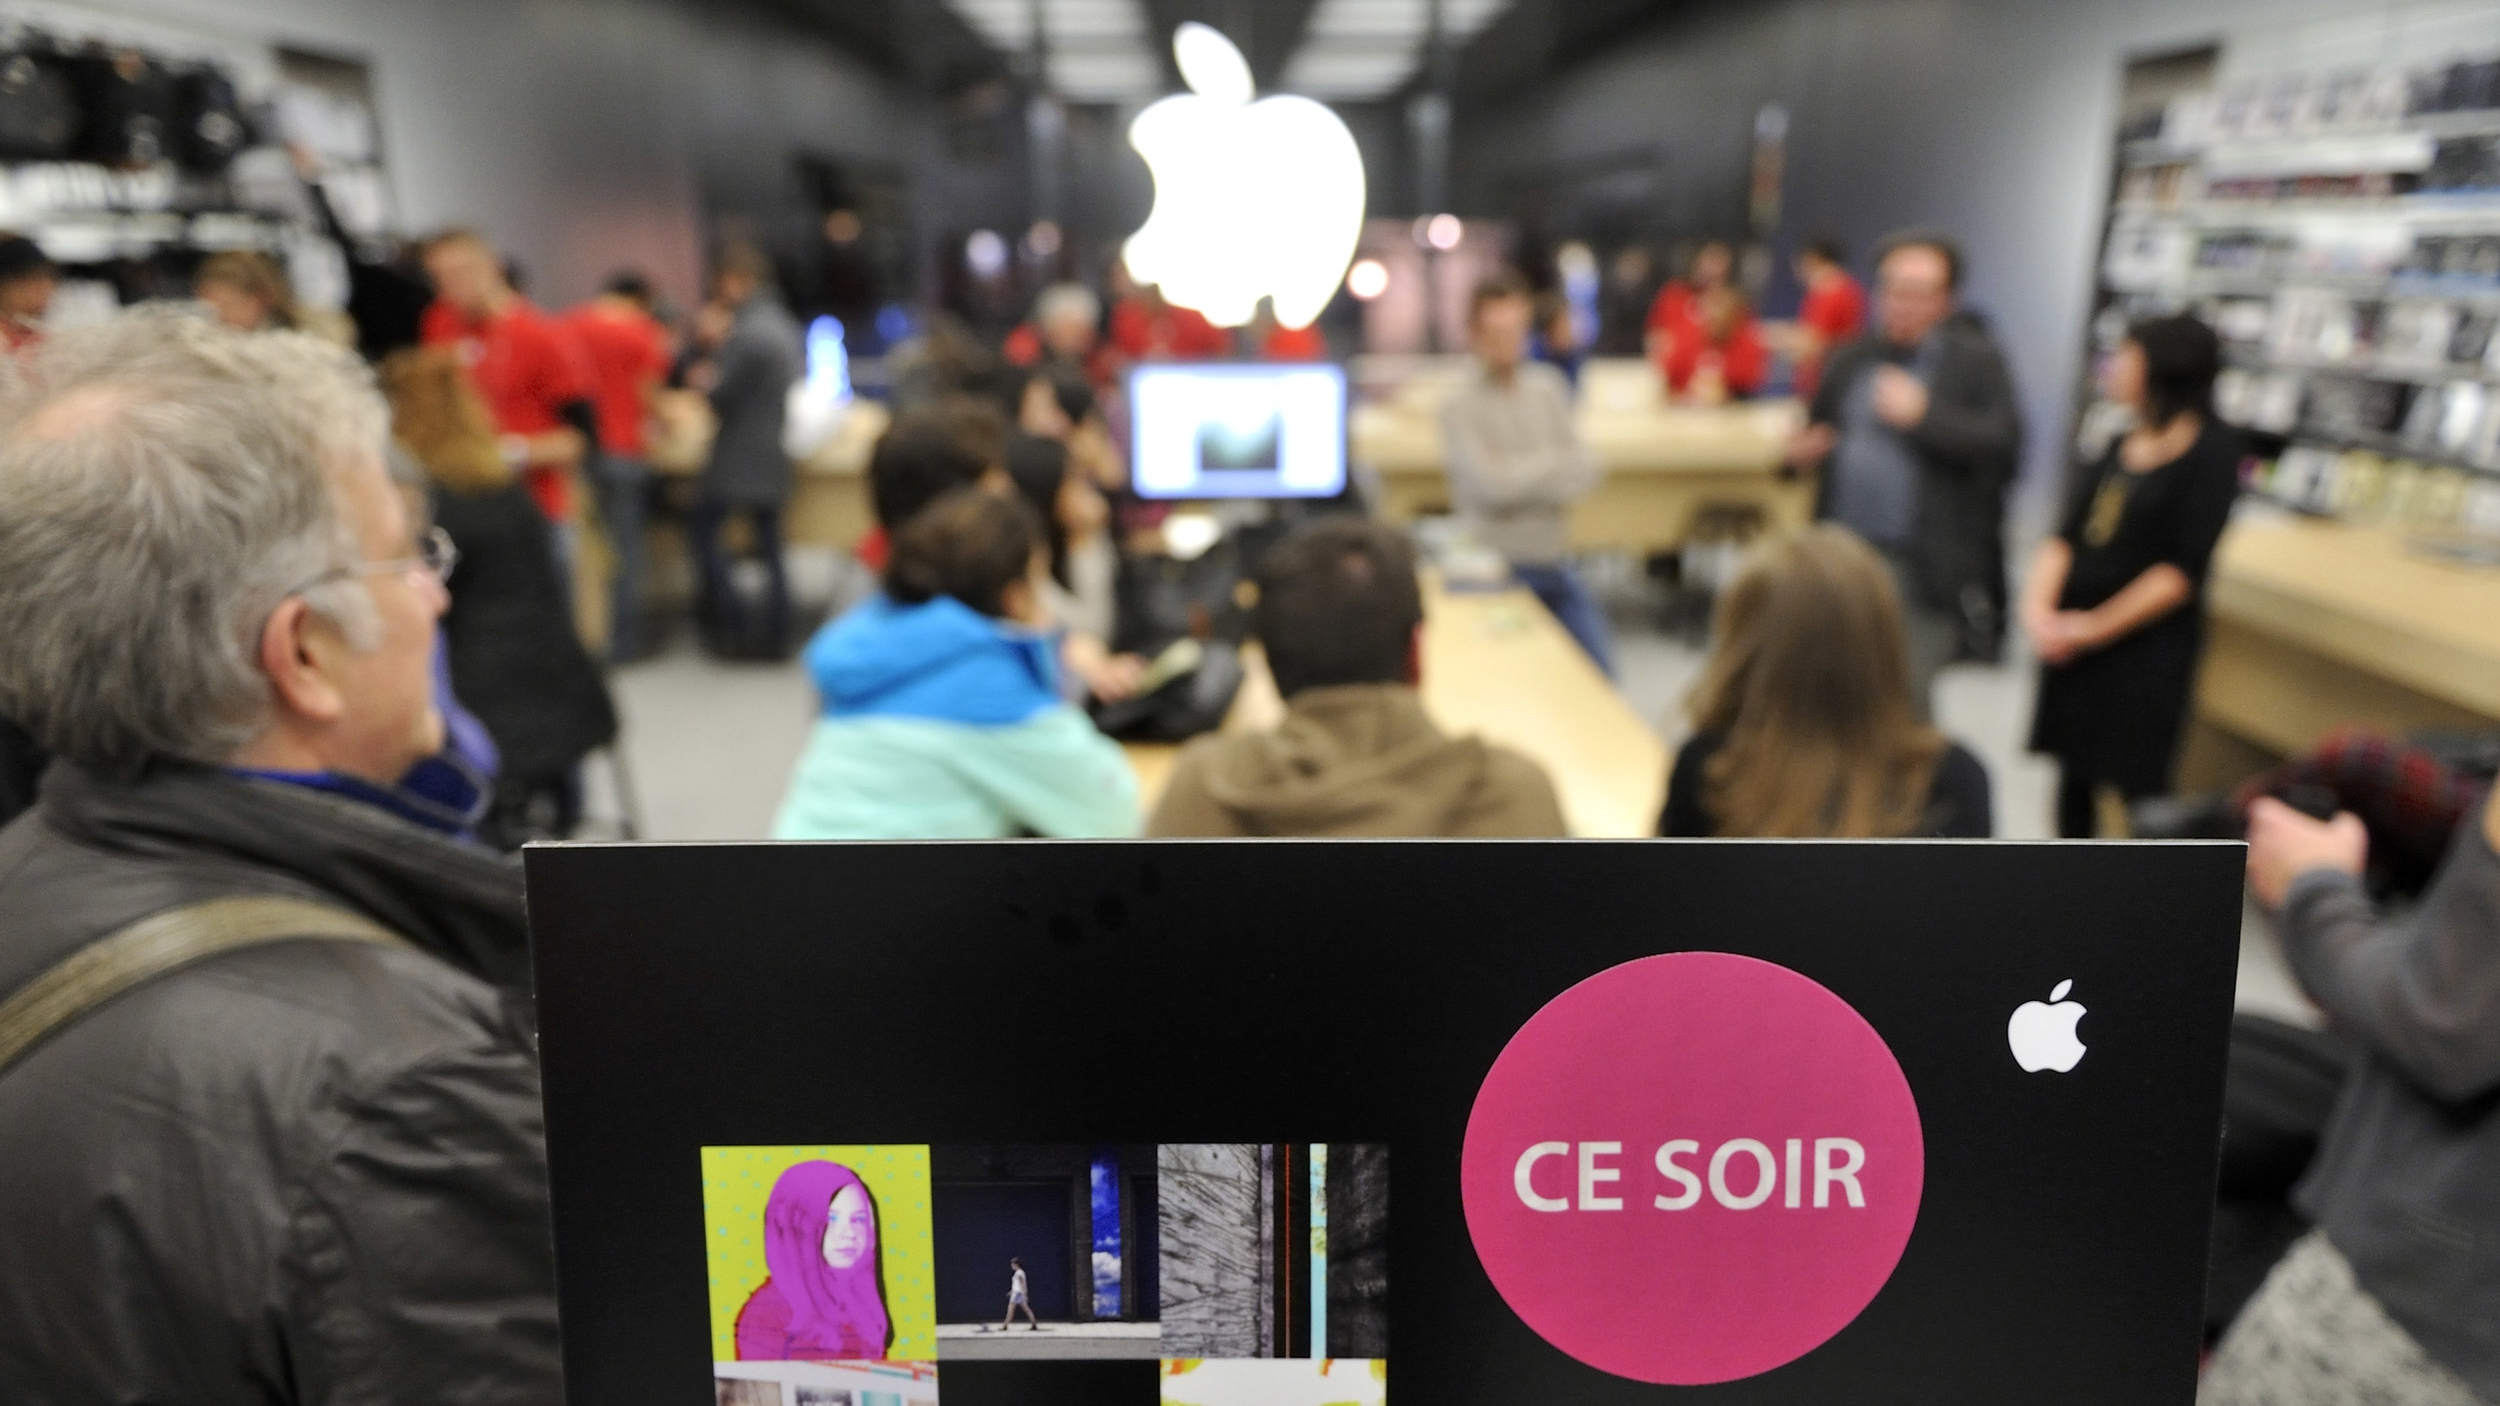 MAM-conference-Apple-Store-D-Beaumont-11-28-2013-214.jpg